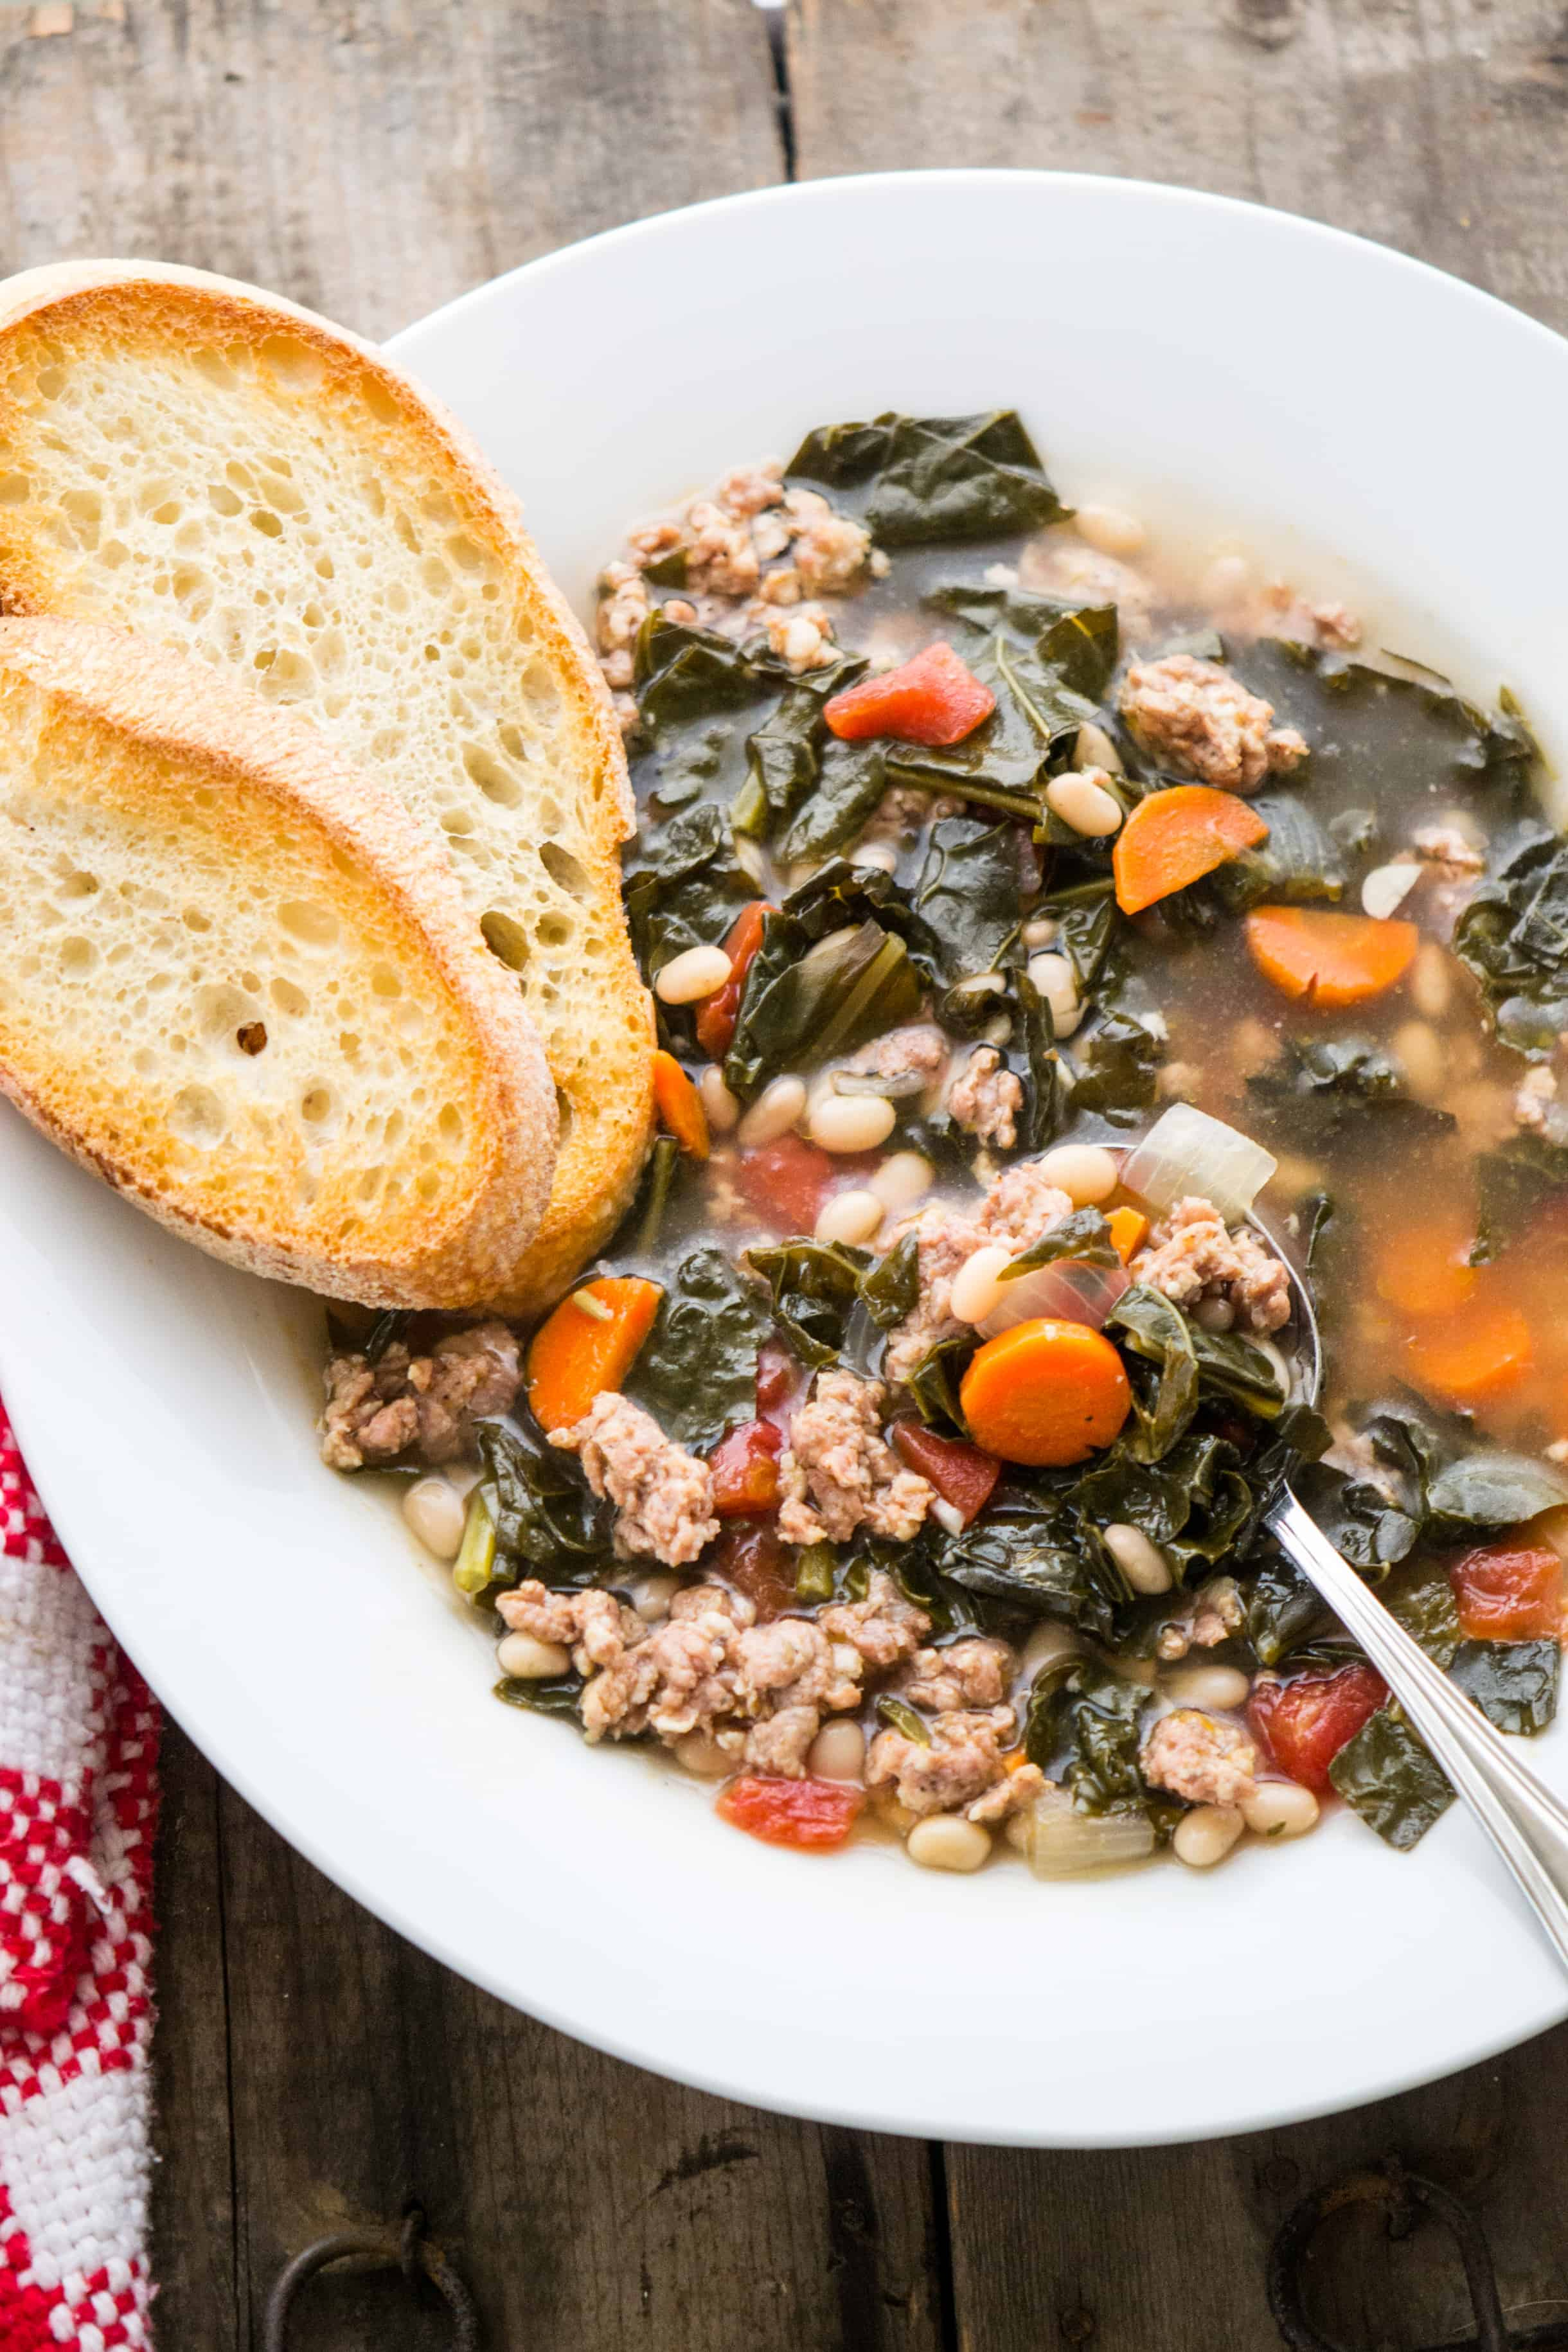 Sweet Italian Sausage, tender White Beans, and rustic Tuscan Kale are the stars in this hearty Italian soup!